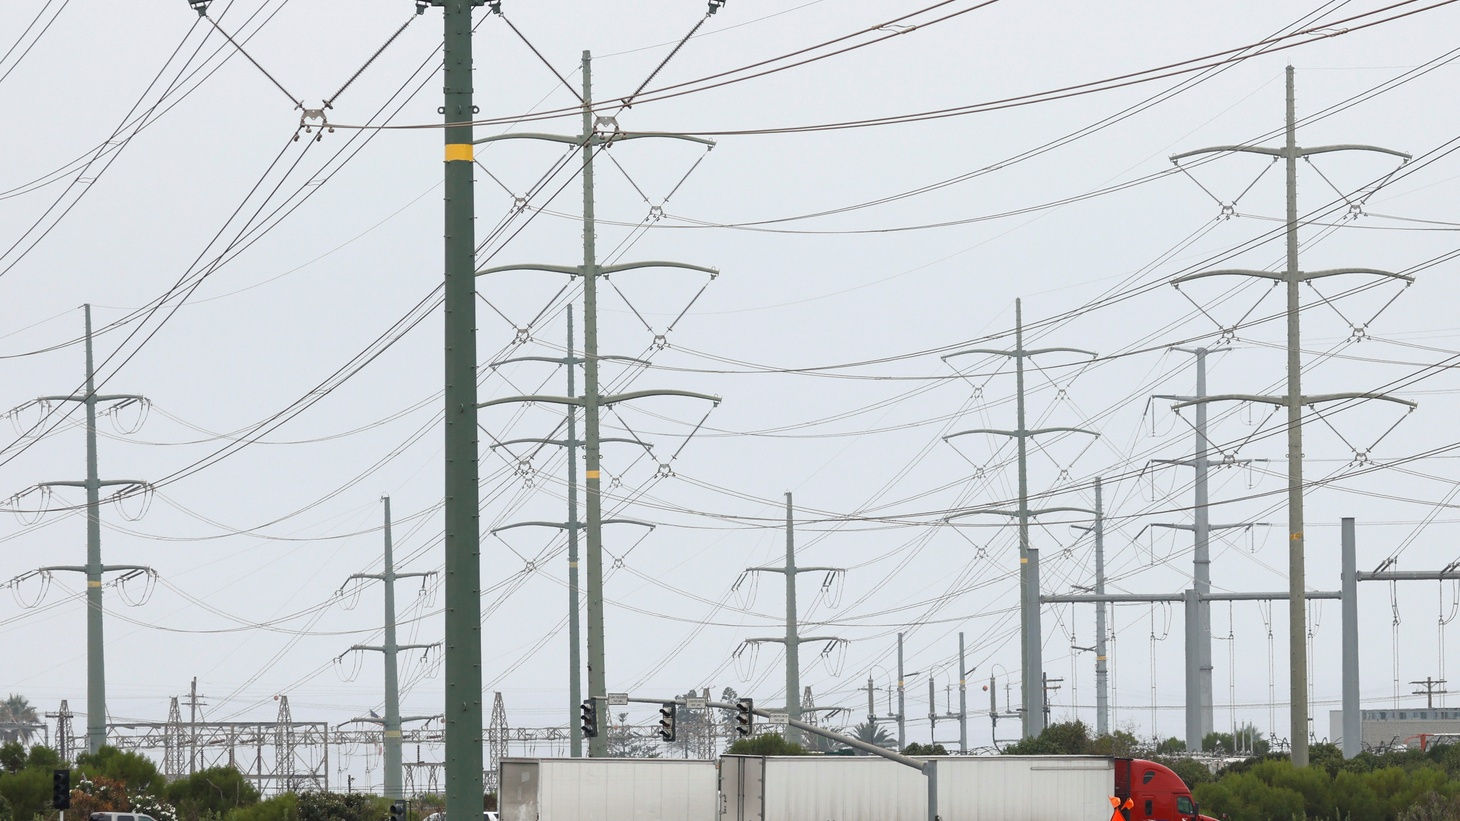 Power lines are shown as California consumers prepare for more possible outages following weekend outages to reduce system strain during a brutal heat wave amid the outbreak of coronavirus disease (COVID-19) in Carlsbad, California, U.S., August 17, 2020.